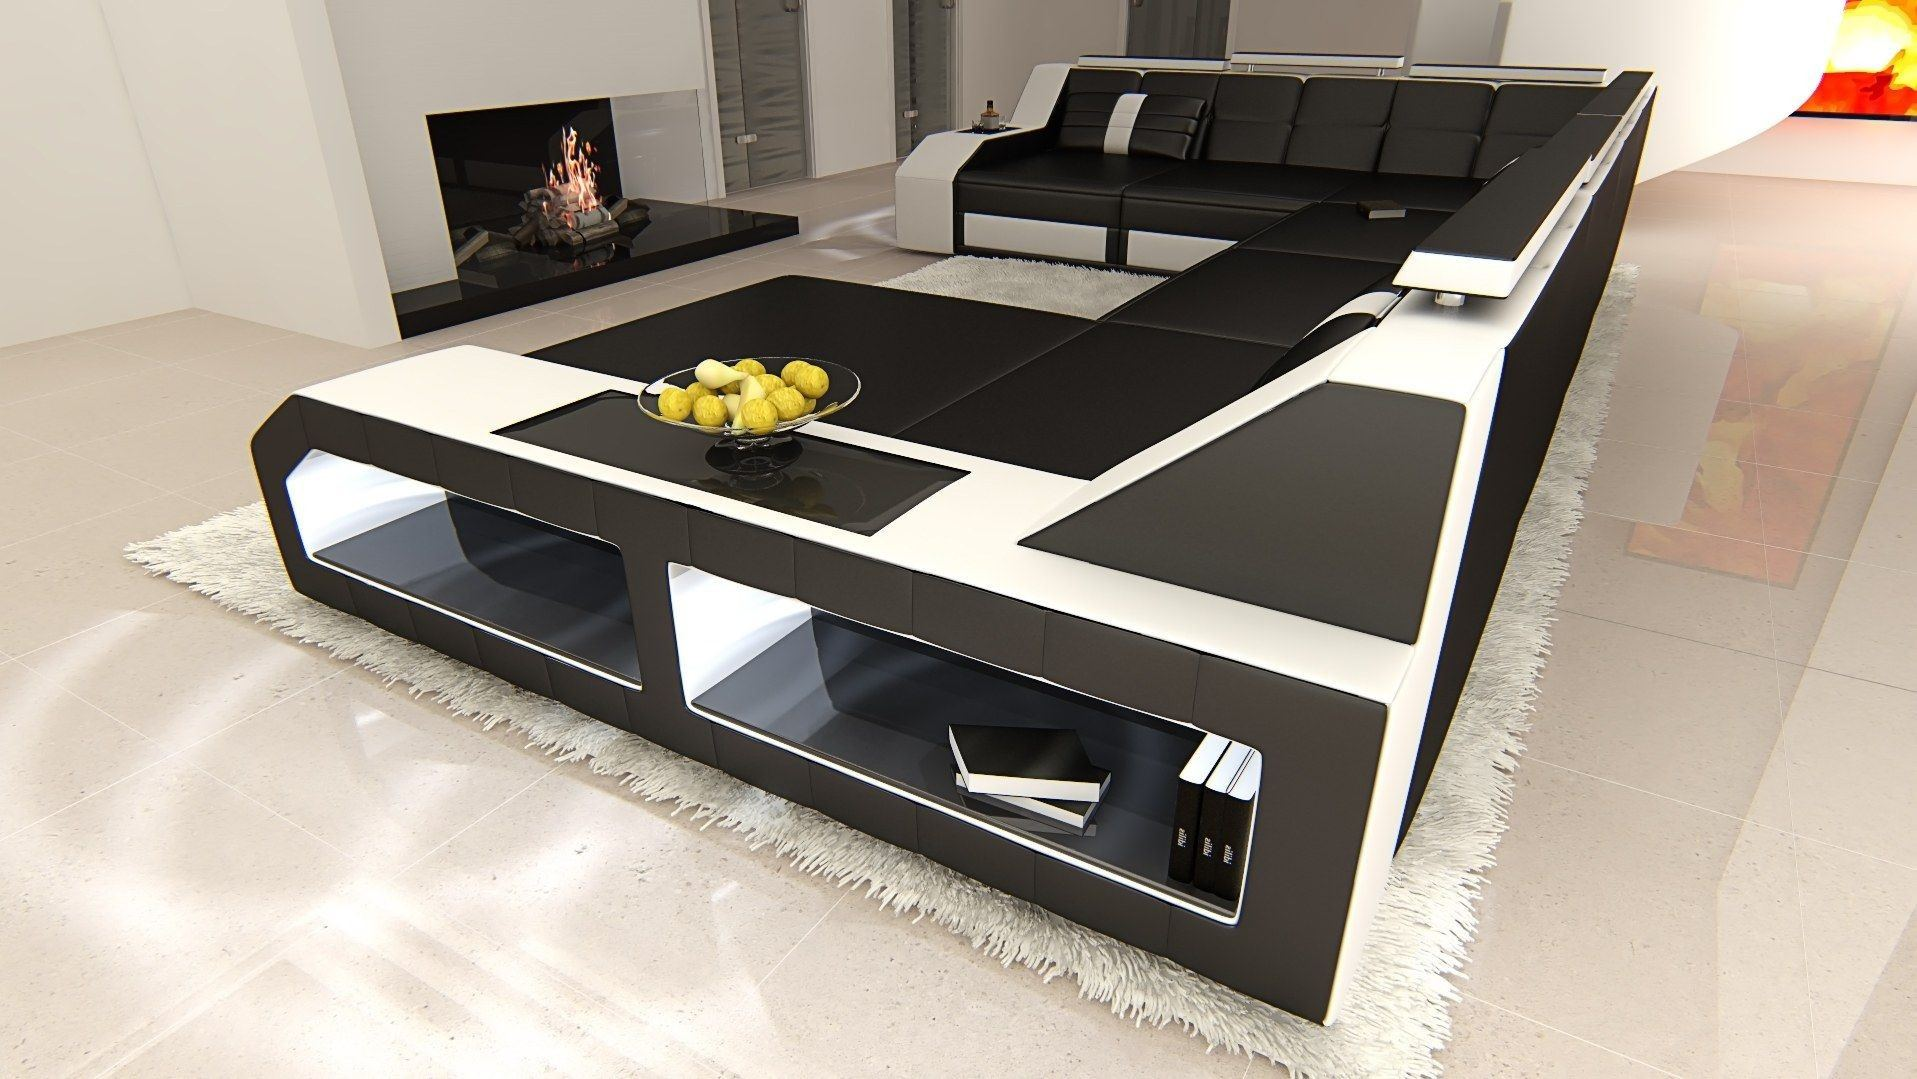 xxl wohnlandschaft matera xxl schwarz weiss. Black Bedroom Furniture Sets. Home Design Ideas